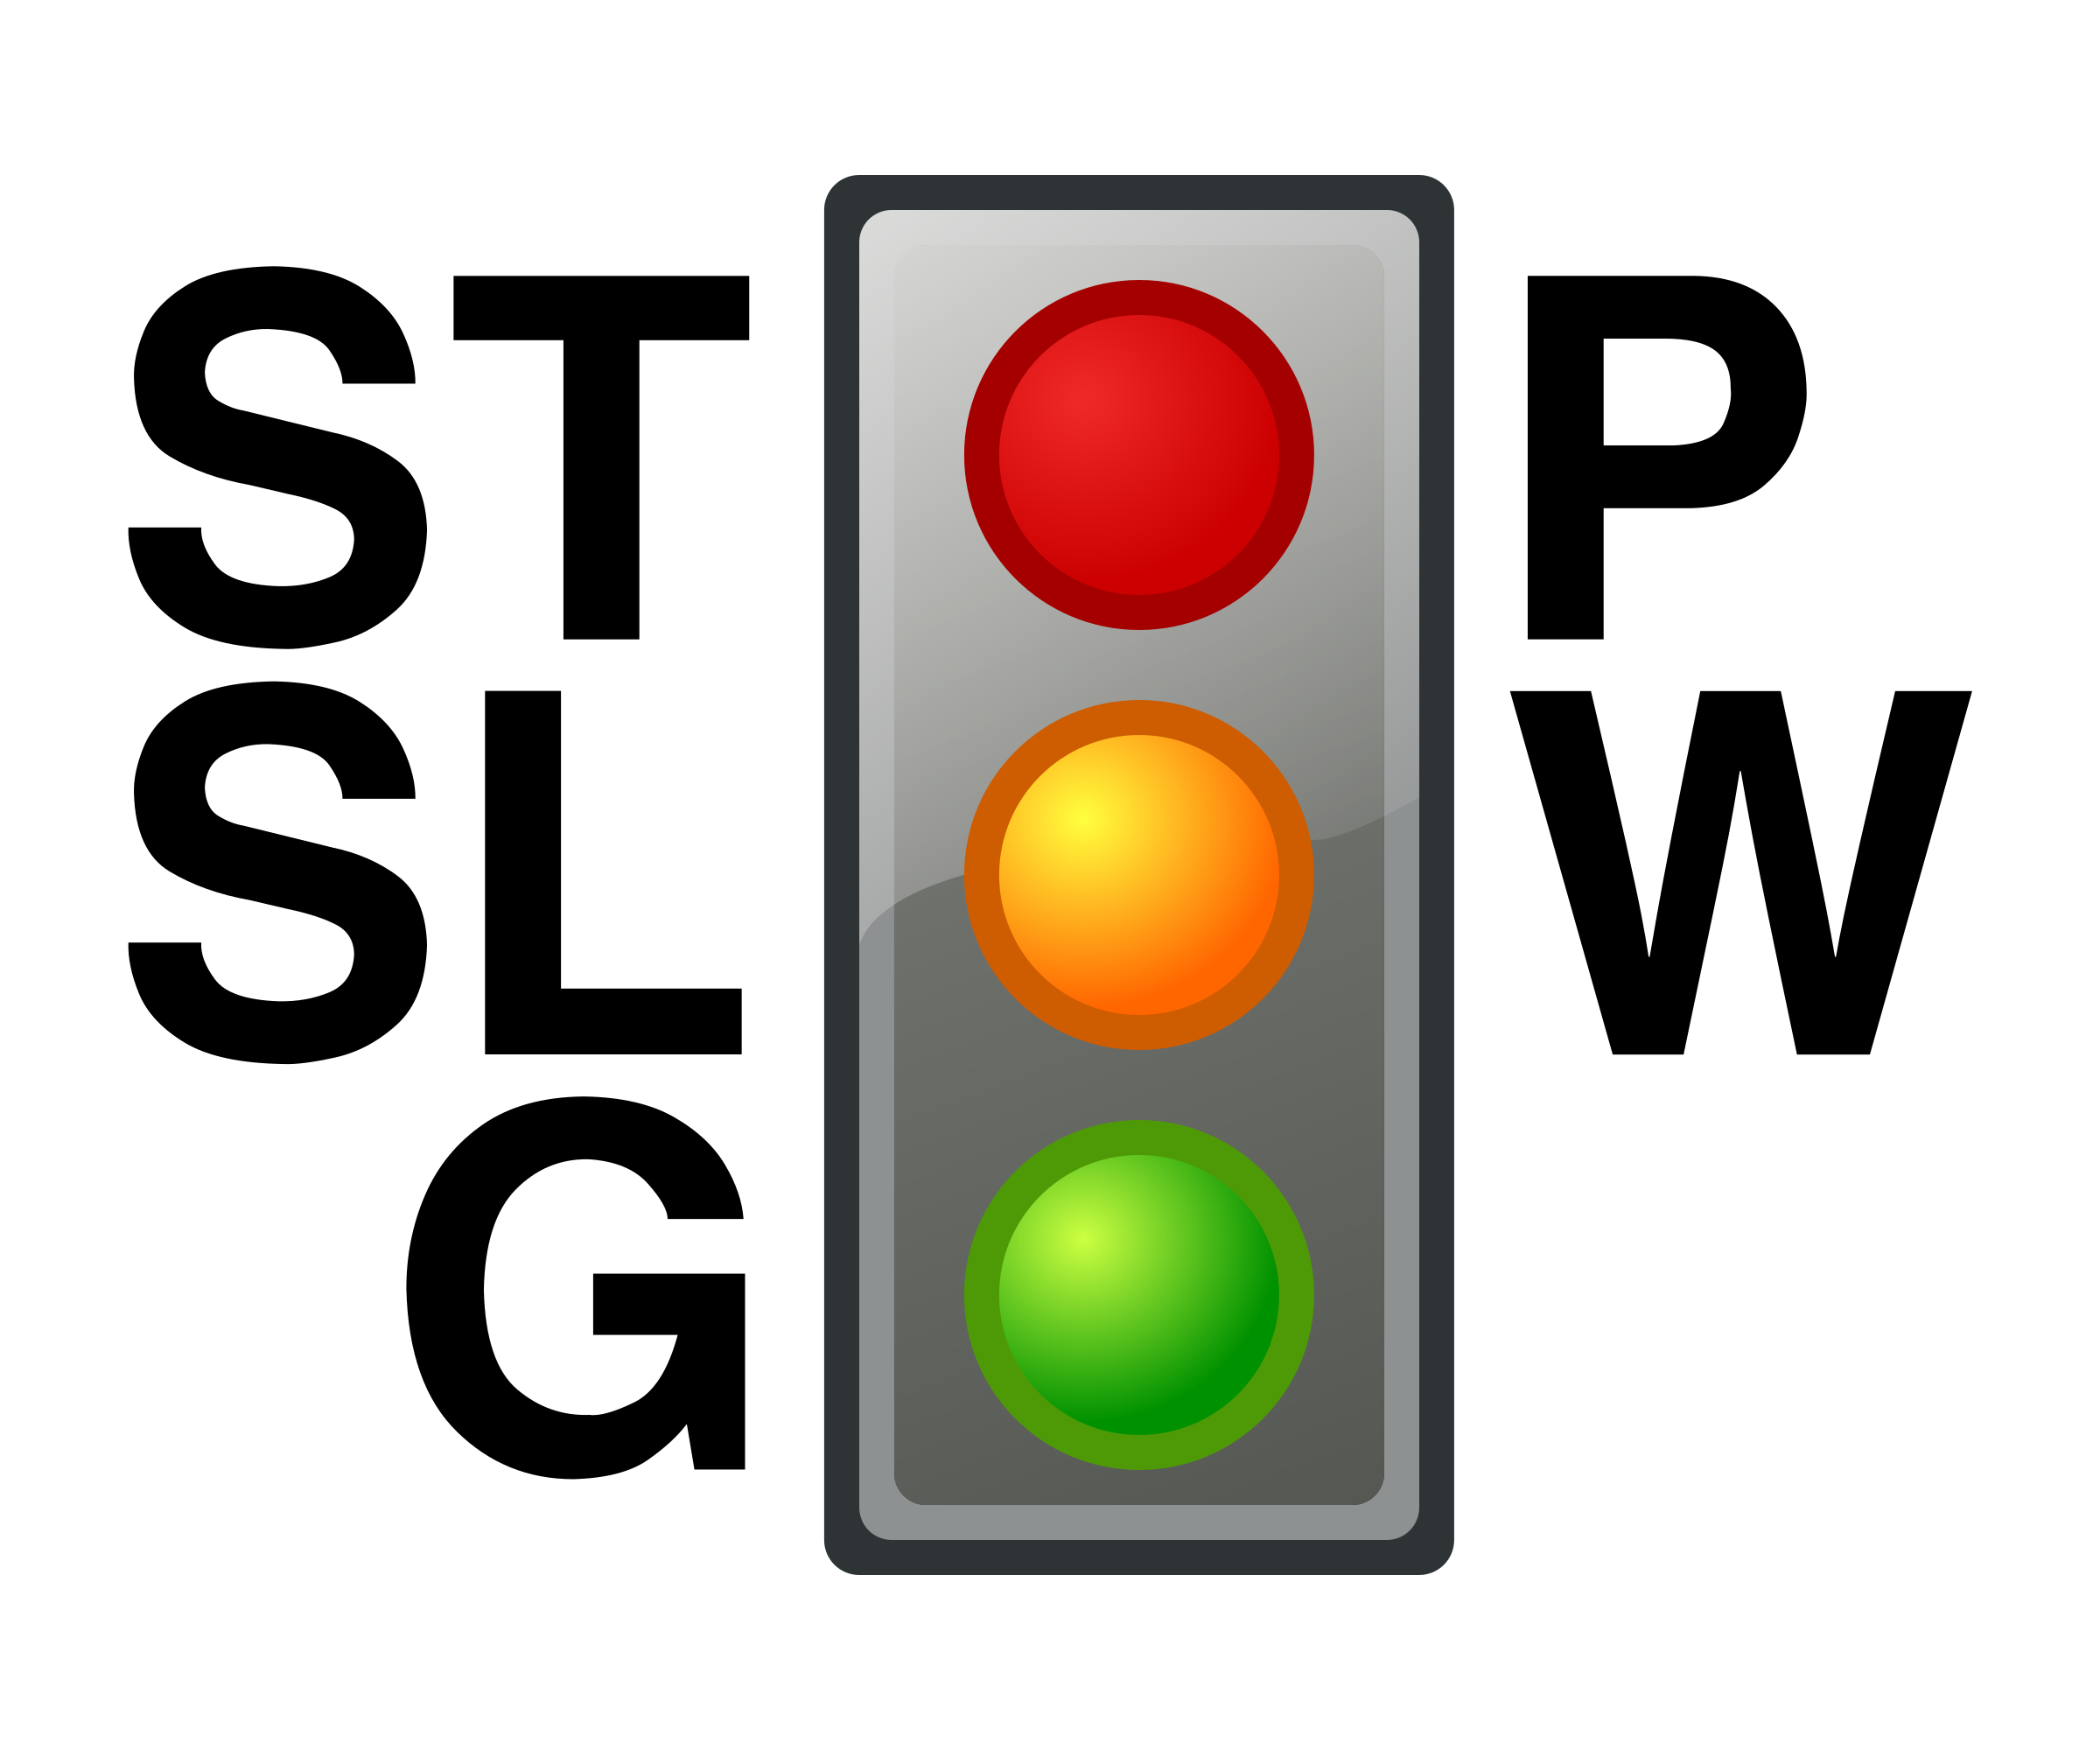 Traffic Light clipart light source Clipart of lights lights traffic